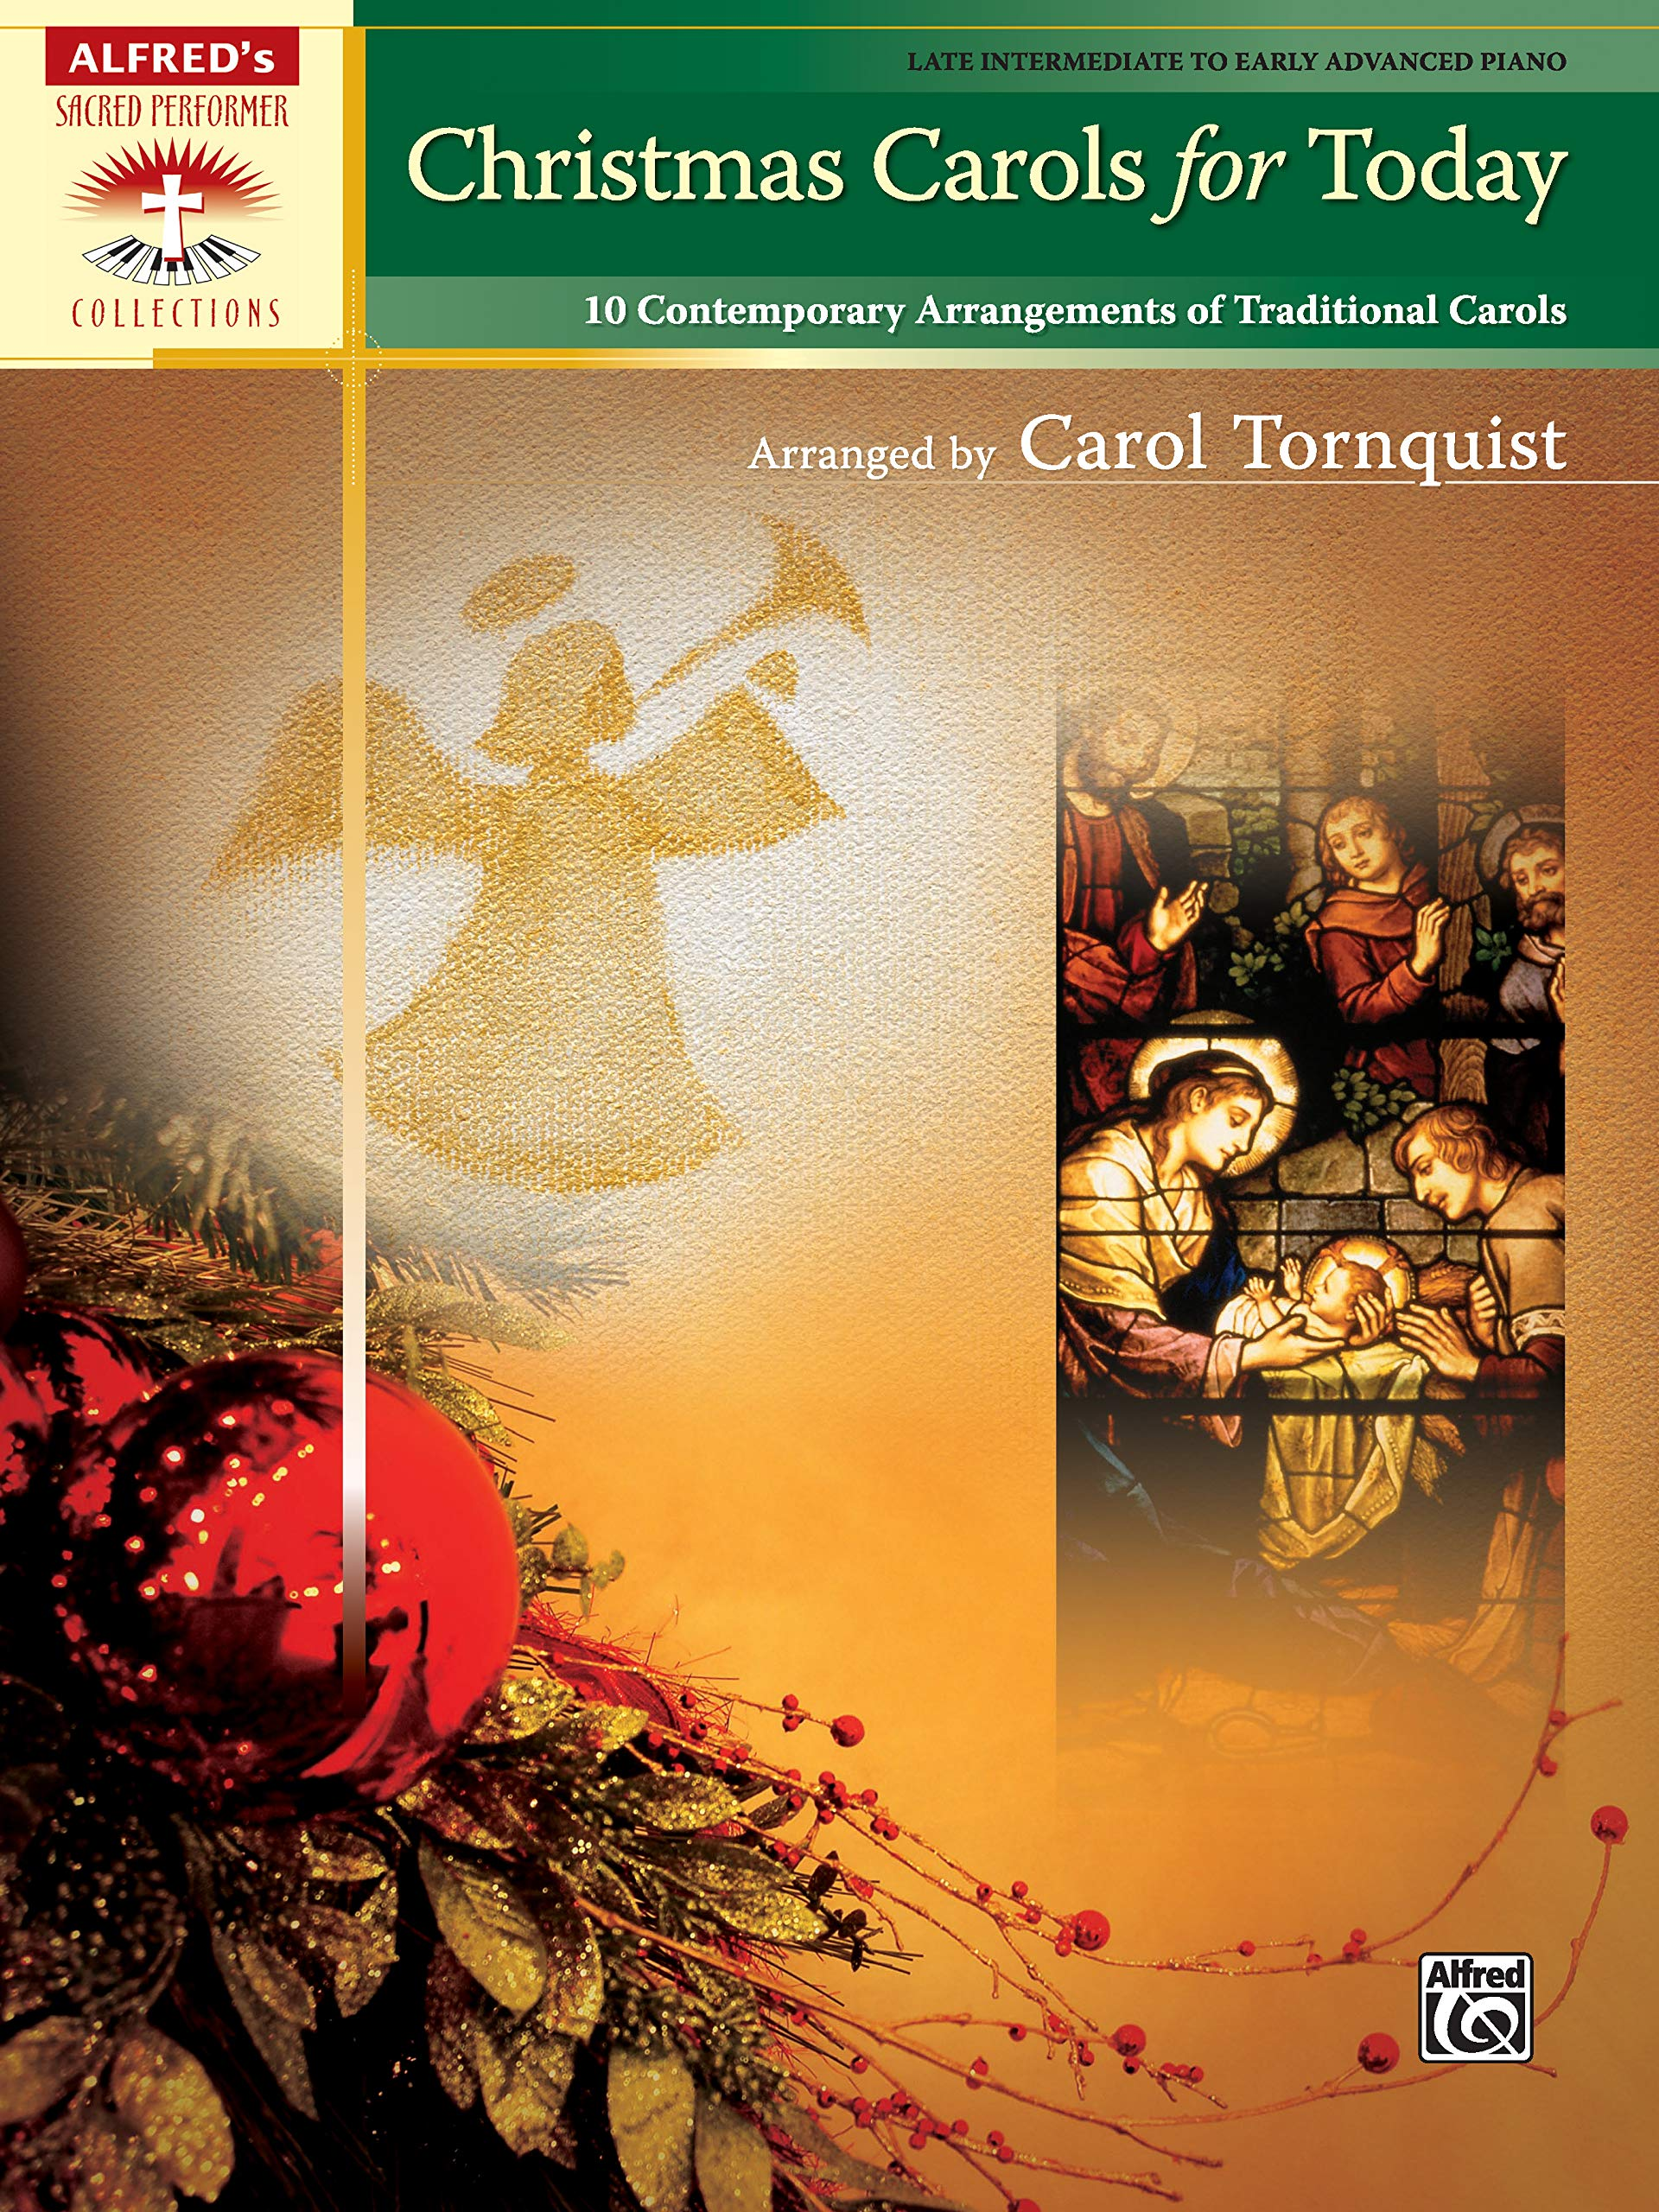 Christmas Carols For Today  10 Contemporary Arrangements Of Traditional Carols  Sacred Performer Collections